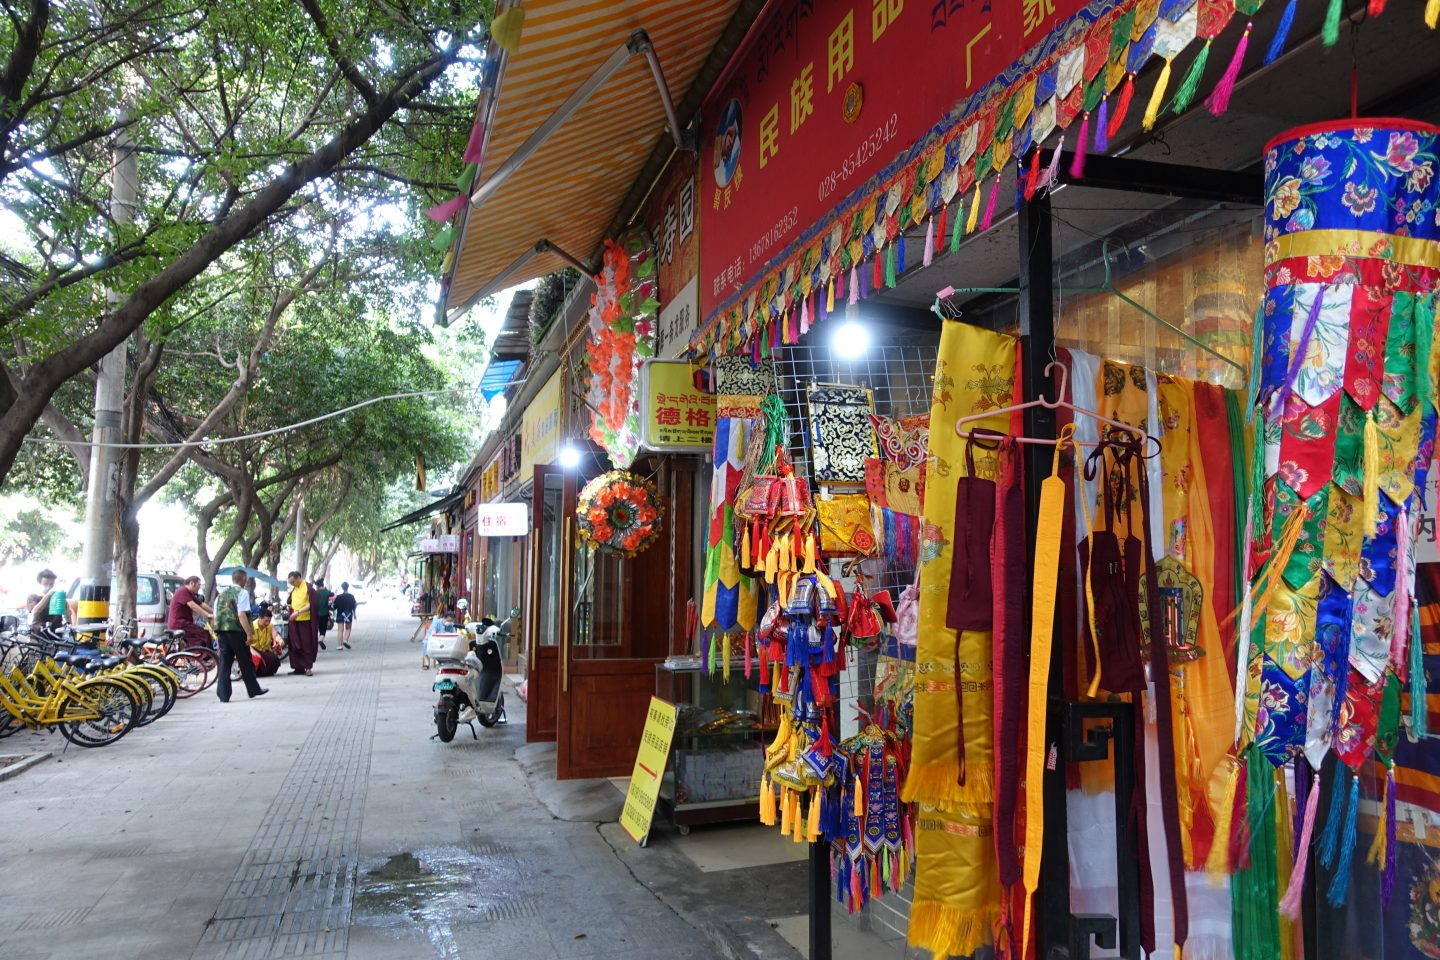 10 Things To Do in Chengdu - Wuhouci Street